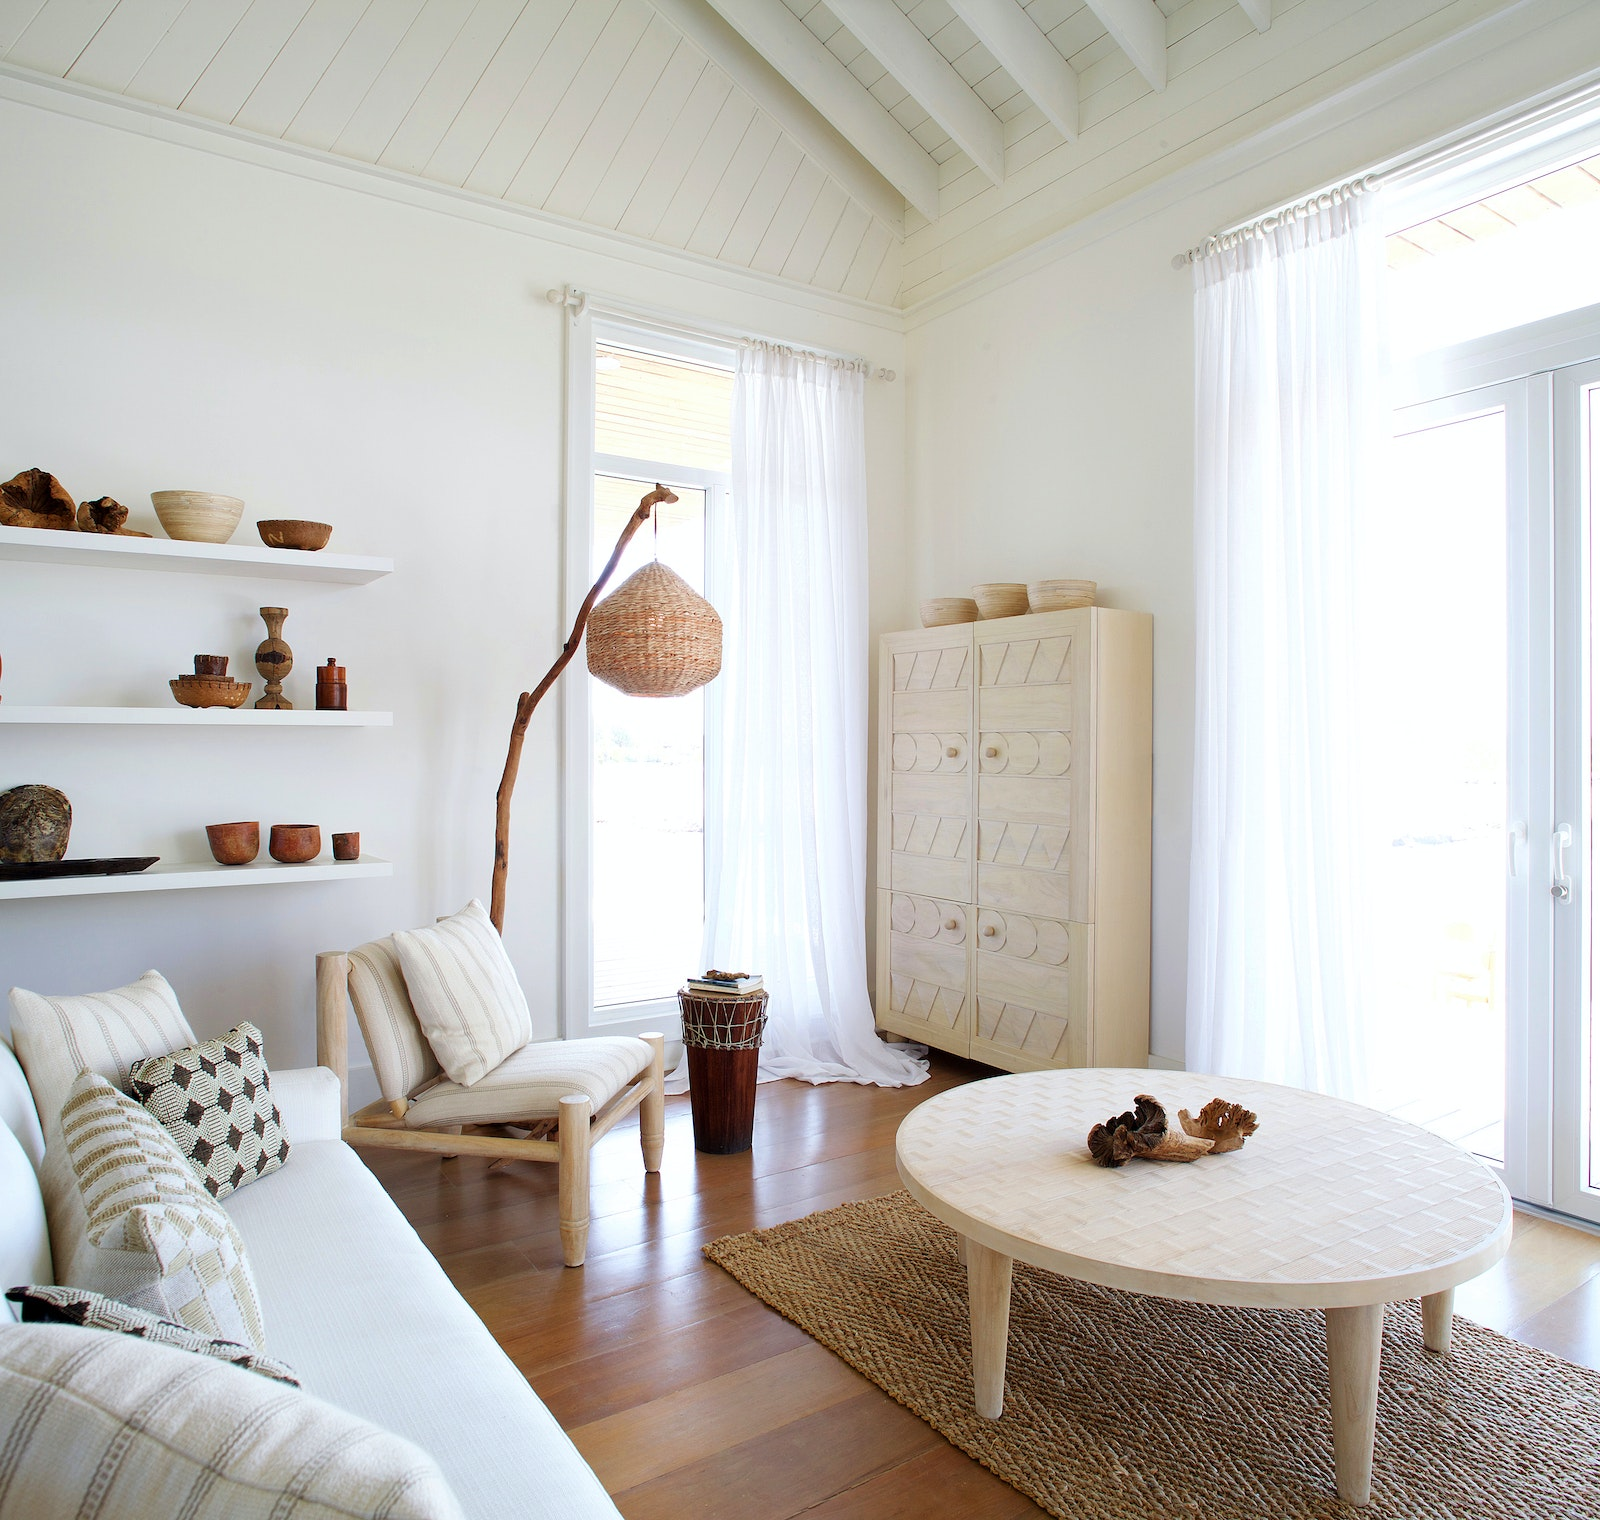 The interior of one of Itz'ana's carbon-neutral villas